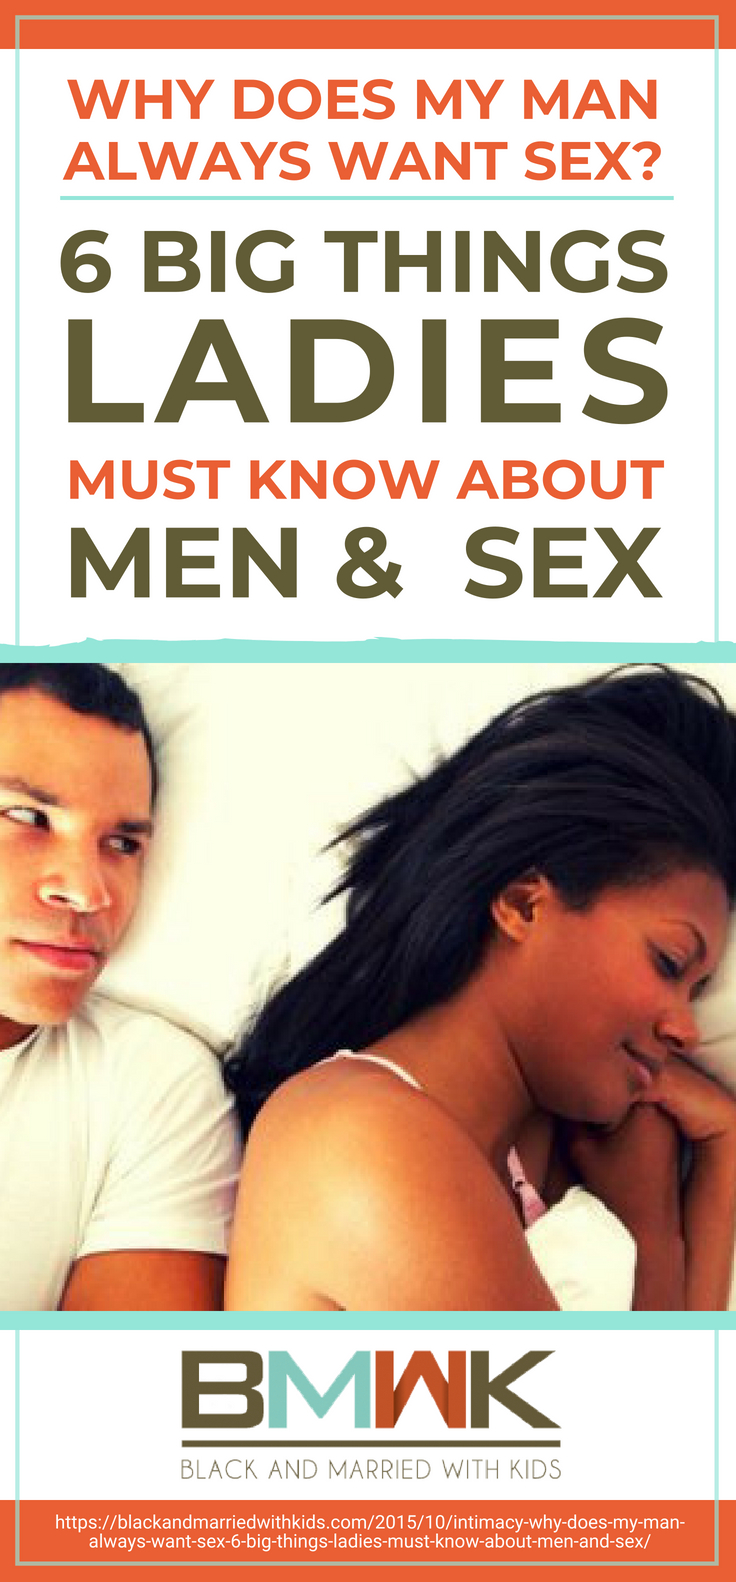 Pinterest Placard | Why Does My Man Always Want Sex? 6 BIG Things Ladies Must Know About Men and Sex!